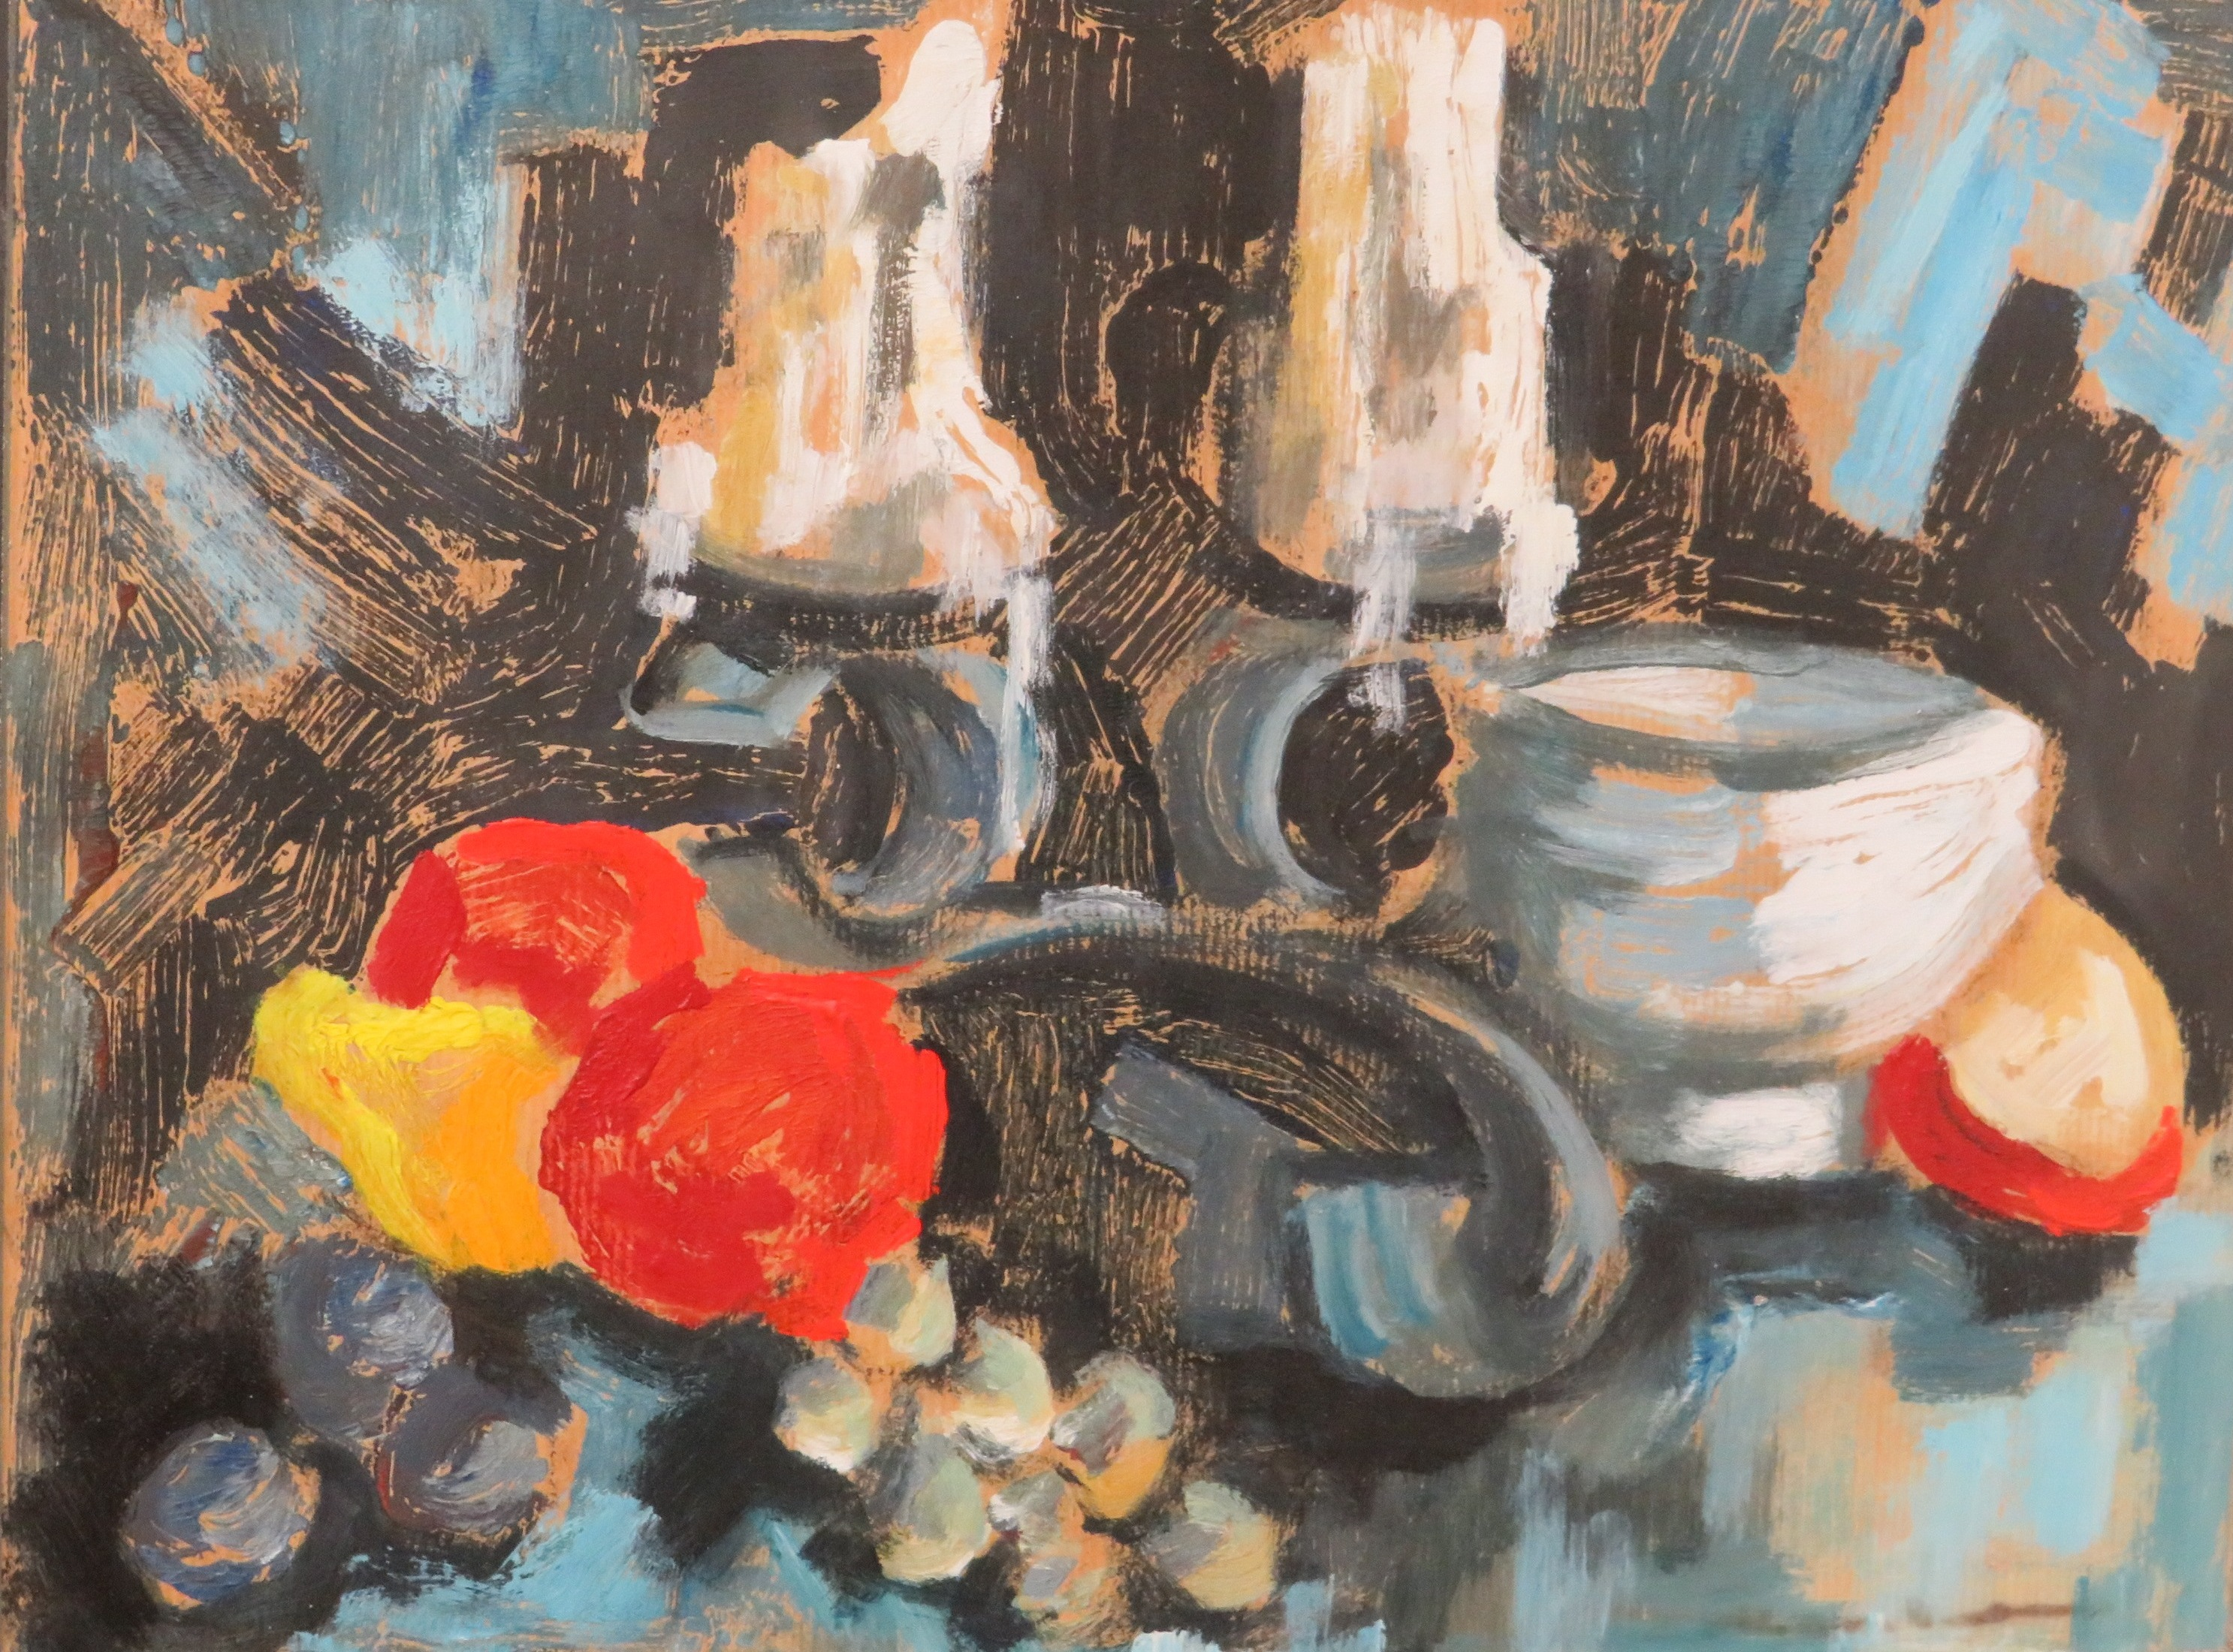 Lot 29 - Still life with red apples, poster paint on buff paper, no signature, (28cm x 38cm), glazed and in a